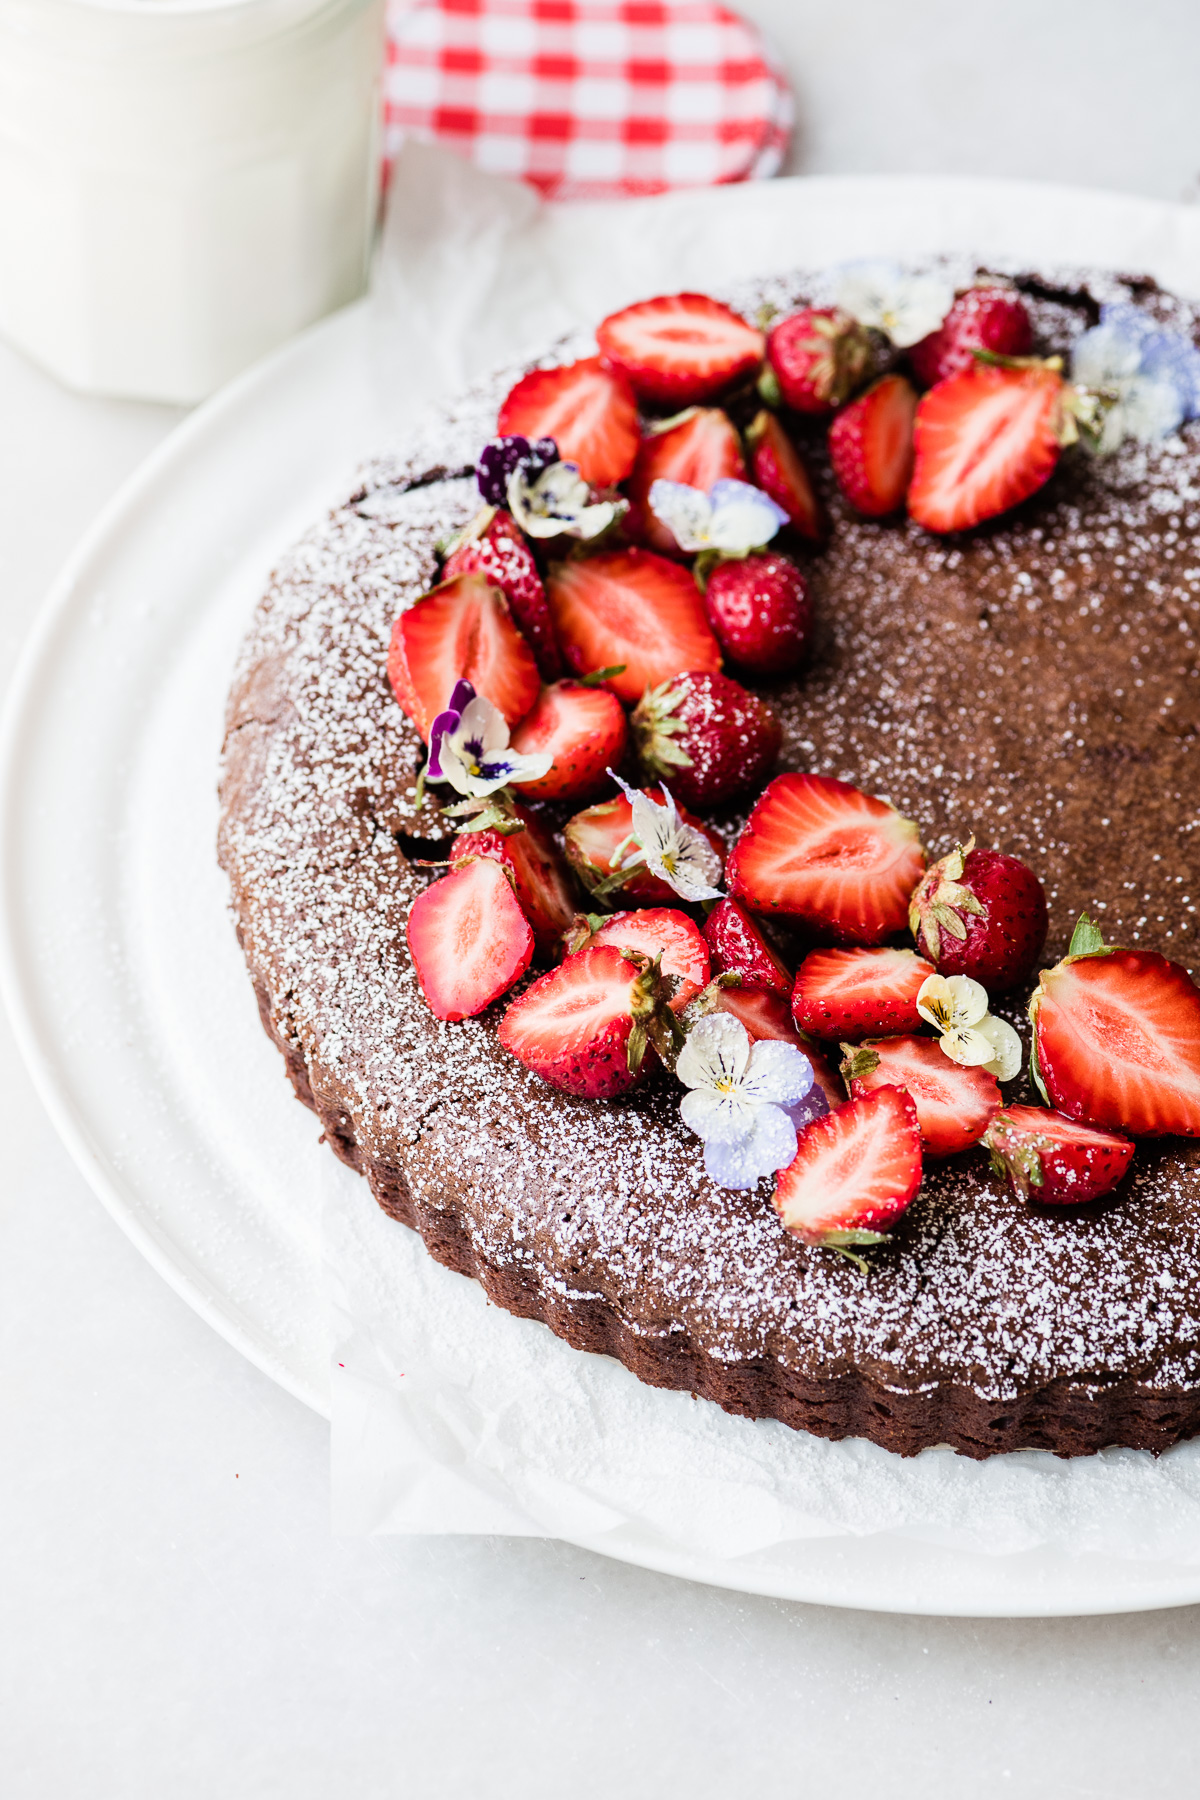 Mexican Chocolate Cake with strawberries and pansies